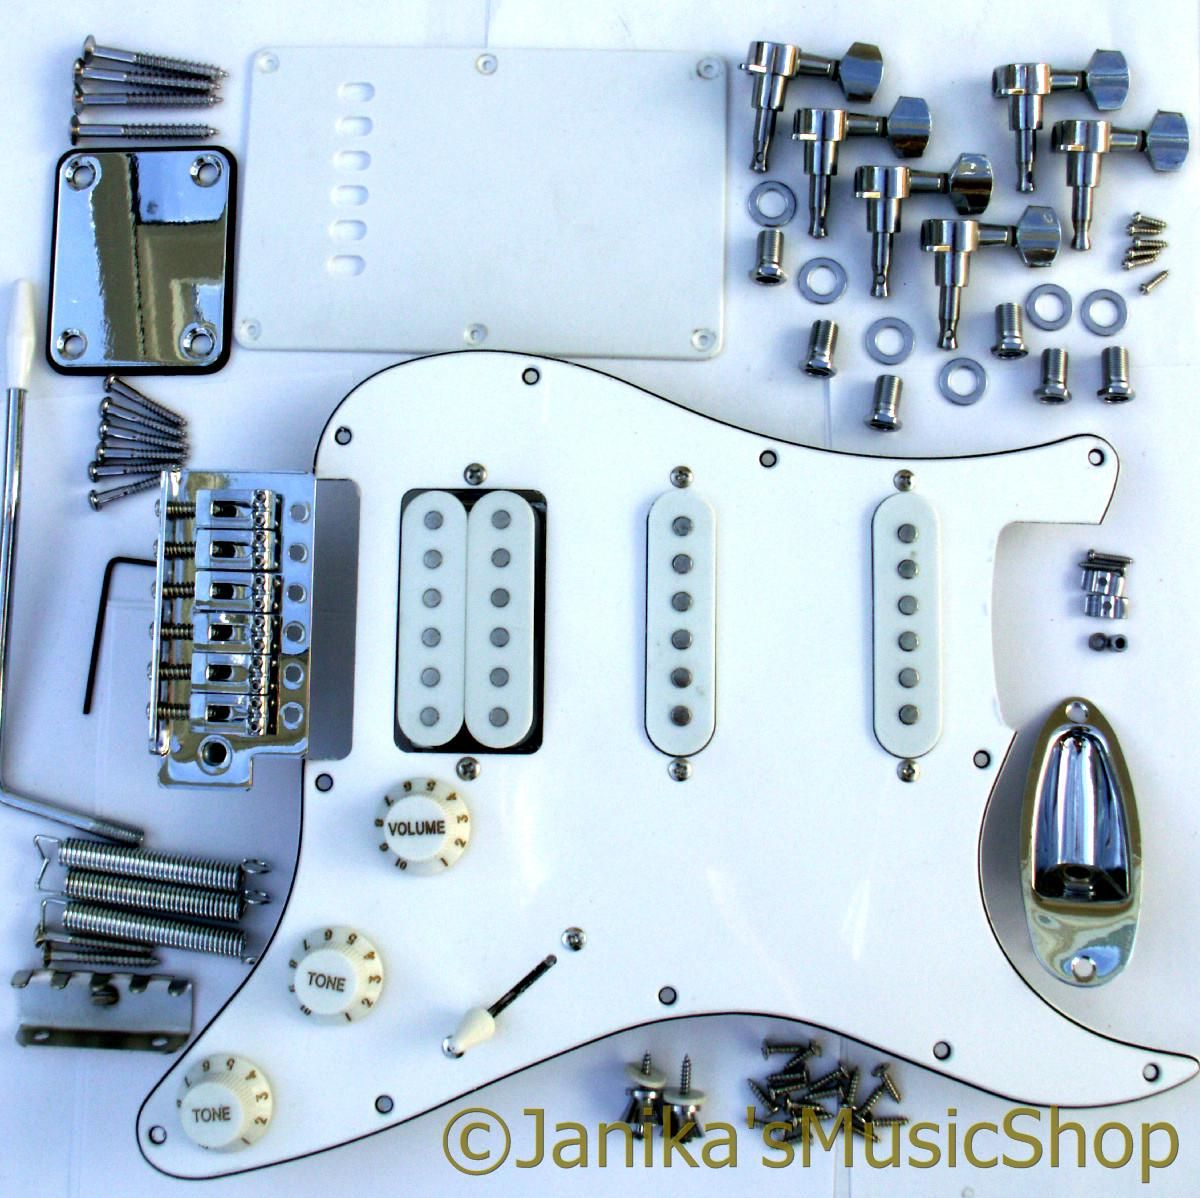 Stratocaster Guitar Hss Metal And White Plastic Full Parts Kit Of A Electric Style Chrome Pickguard Machine Heads Bridge Pickups